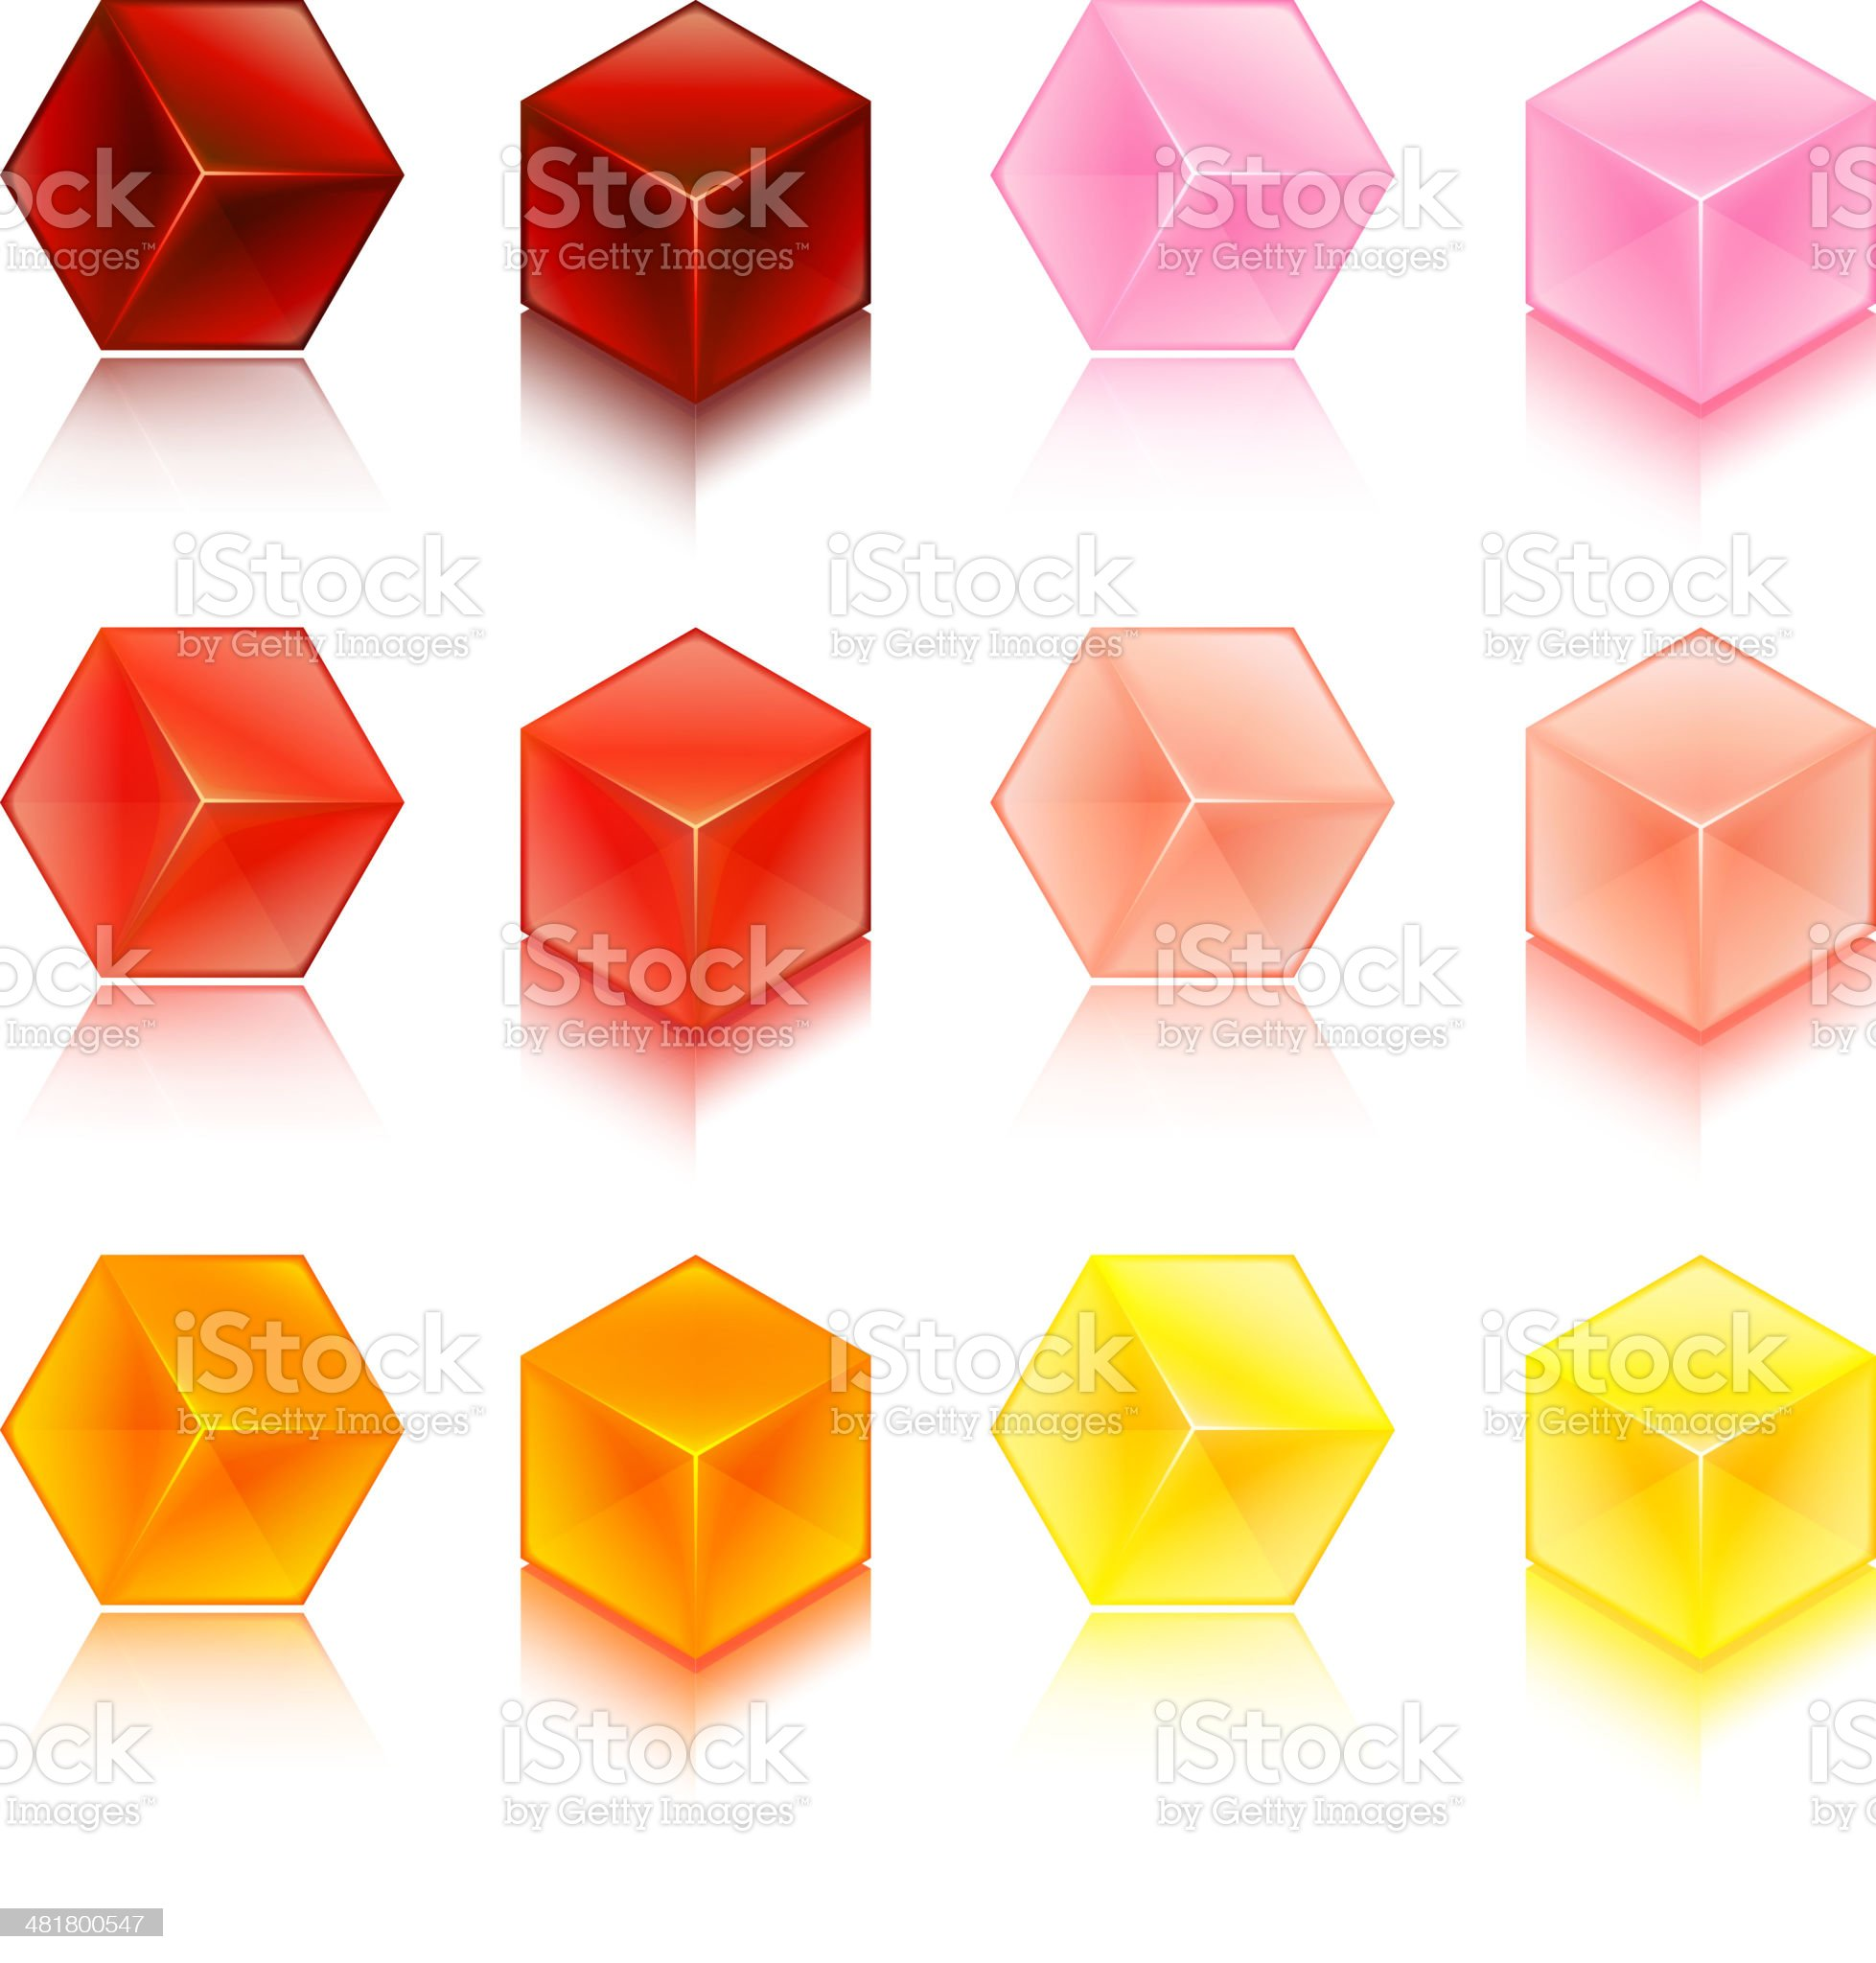 Blank 3D Cubes Full Color Set royalty-free stock vector art